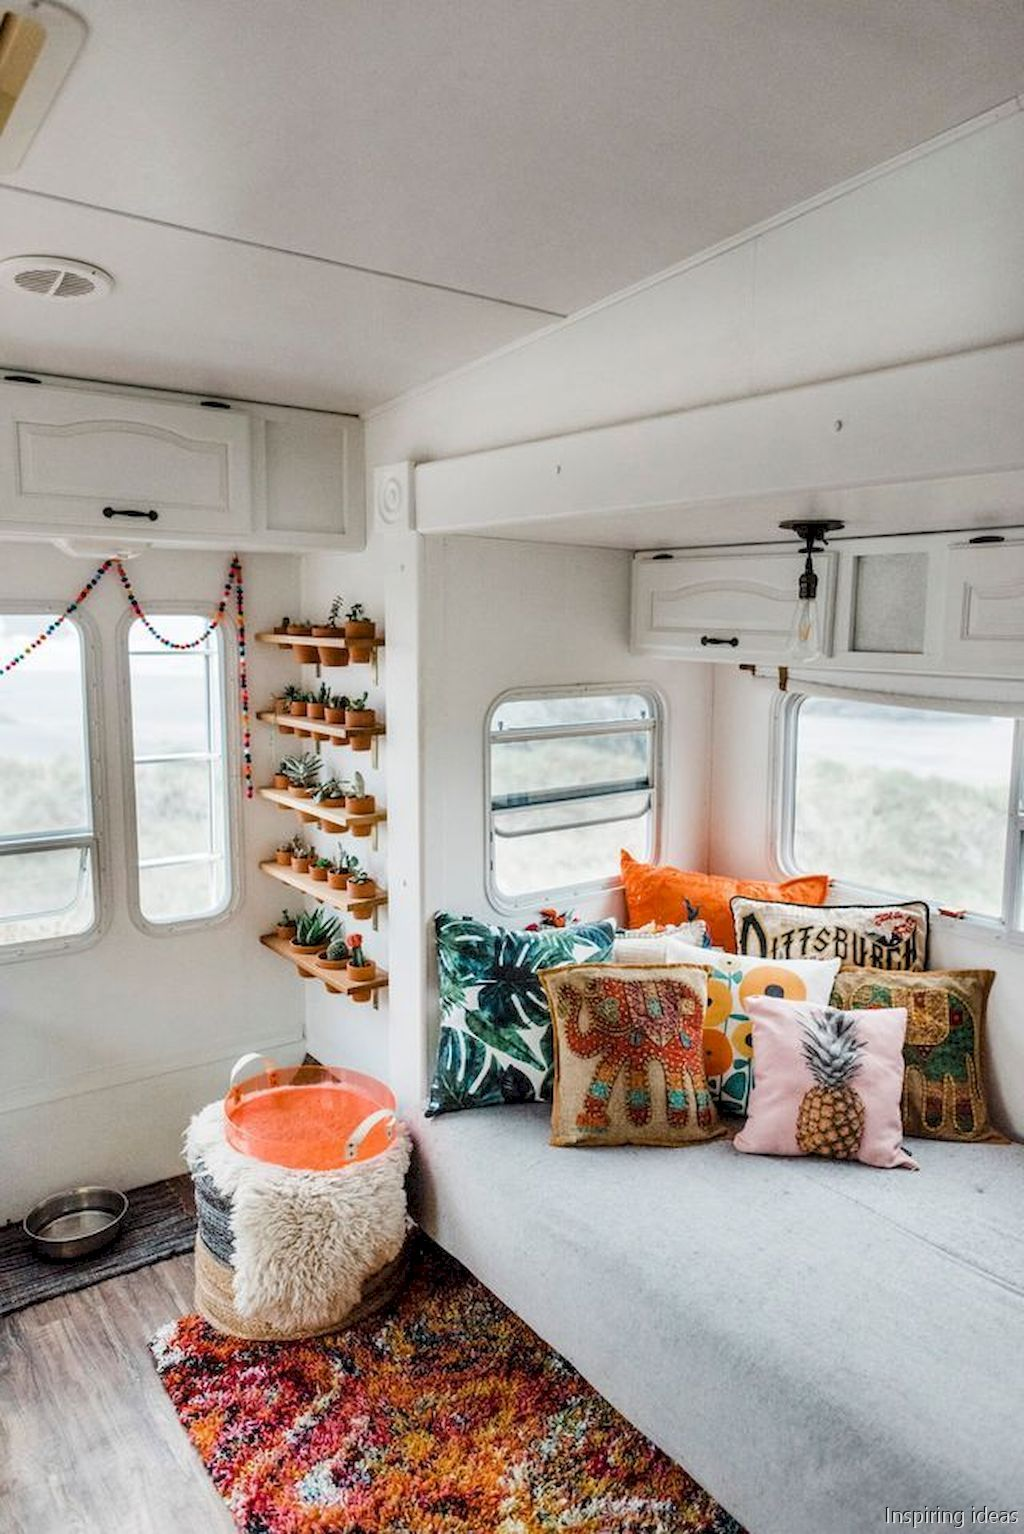 69 Clever RV Living Ideas and Tips | Camping Survival | Travel